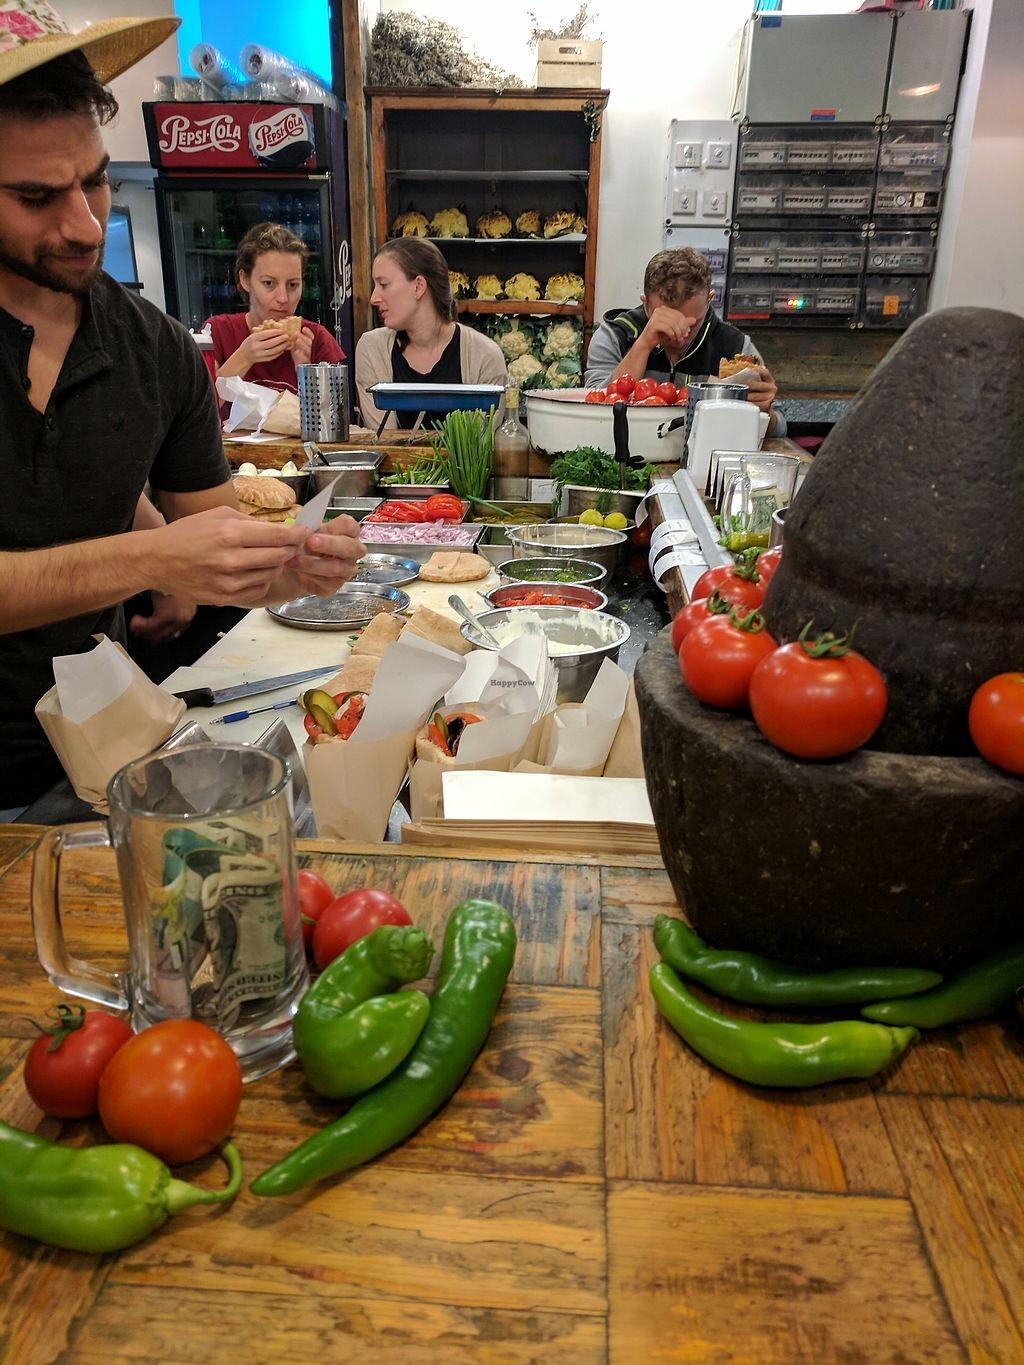 """Photo of Miznon - Ibn Gabirol  by <a href=""""/members/profile/eee135"""">eee135</a> <br/>Counter preparing food <br/> October 11, 2017  - <a href='/contact/abuse/image/102738/314308'>Report</a>"""